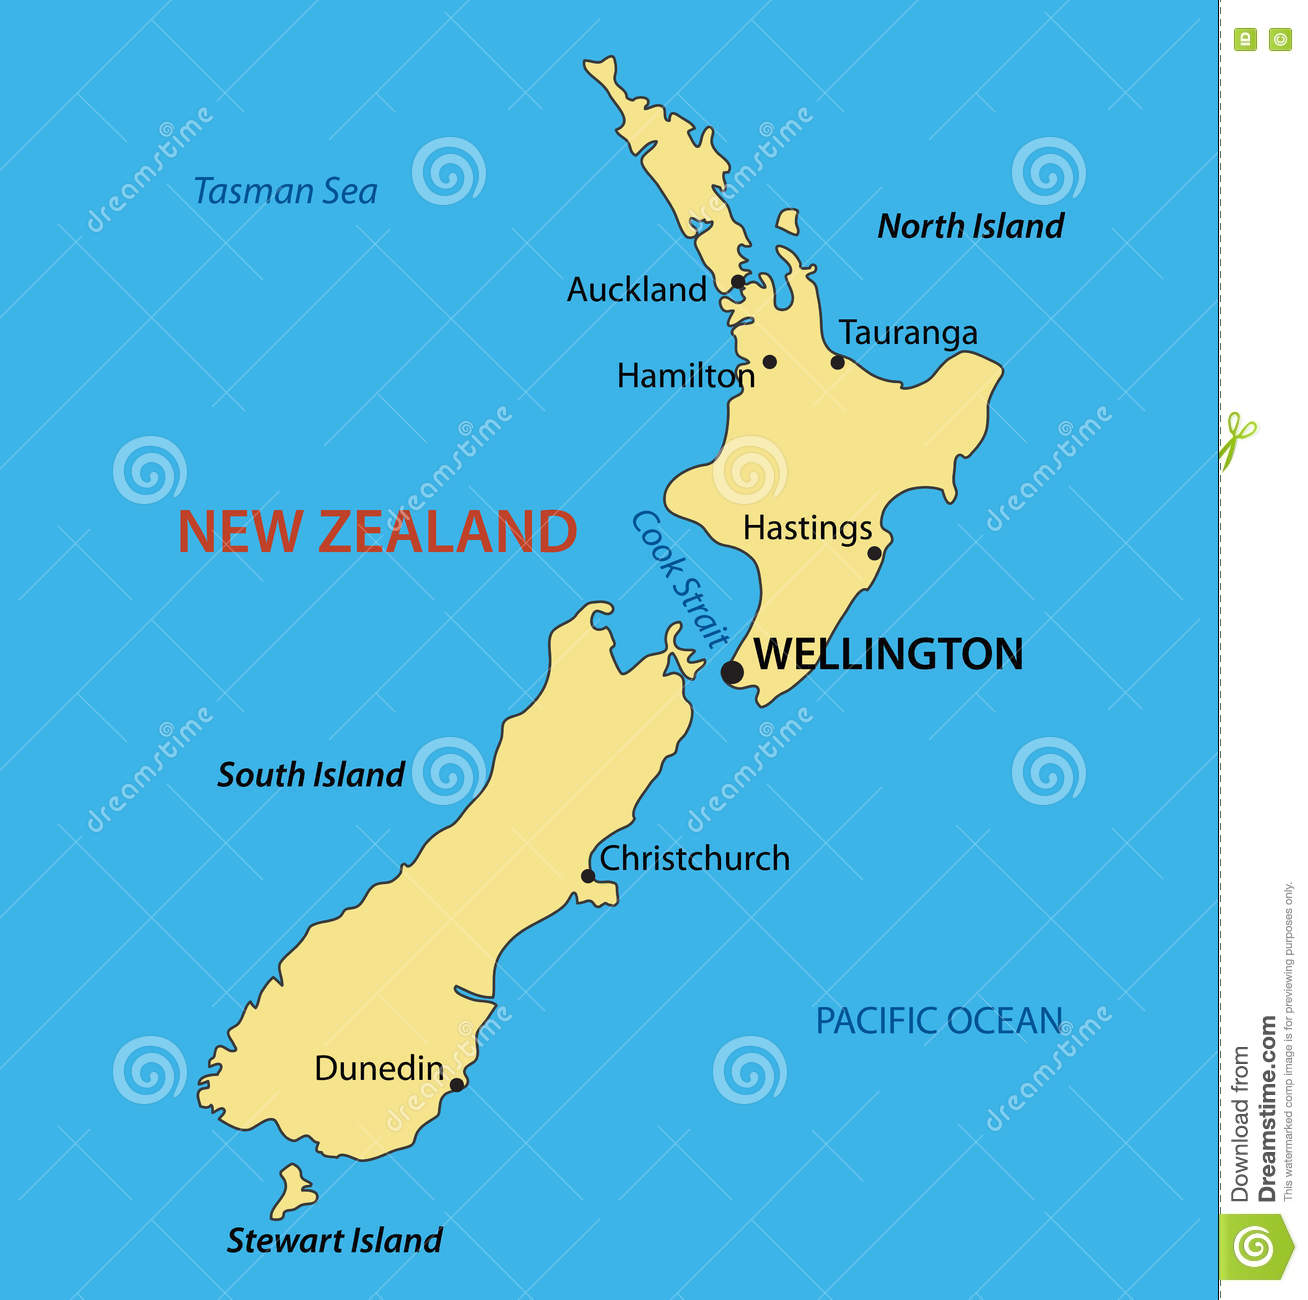 New Zealand - vector map stock vector. Illustration of capital ... on